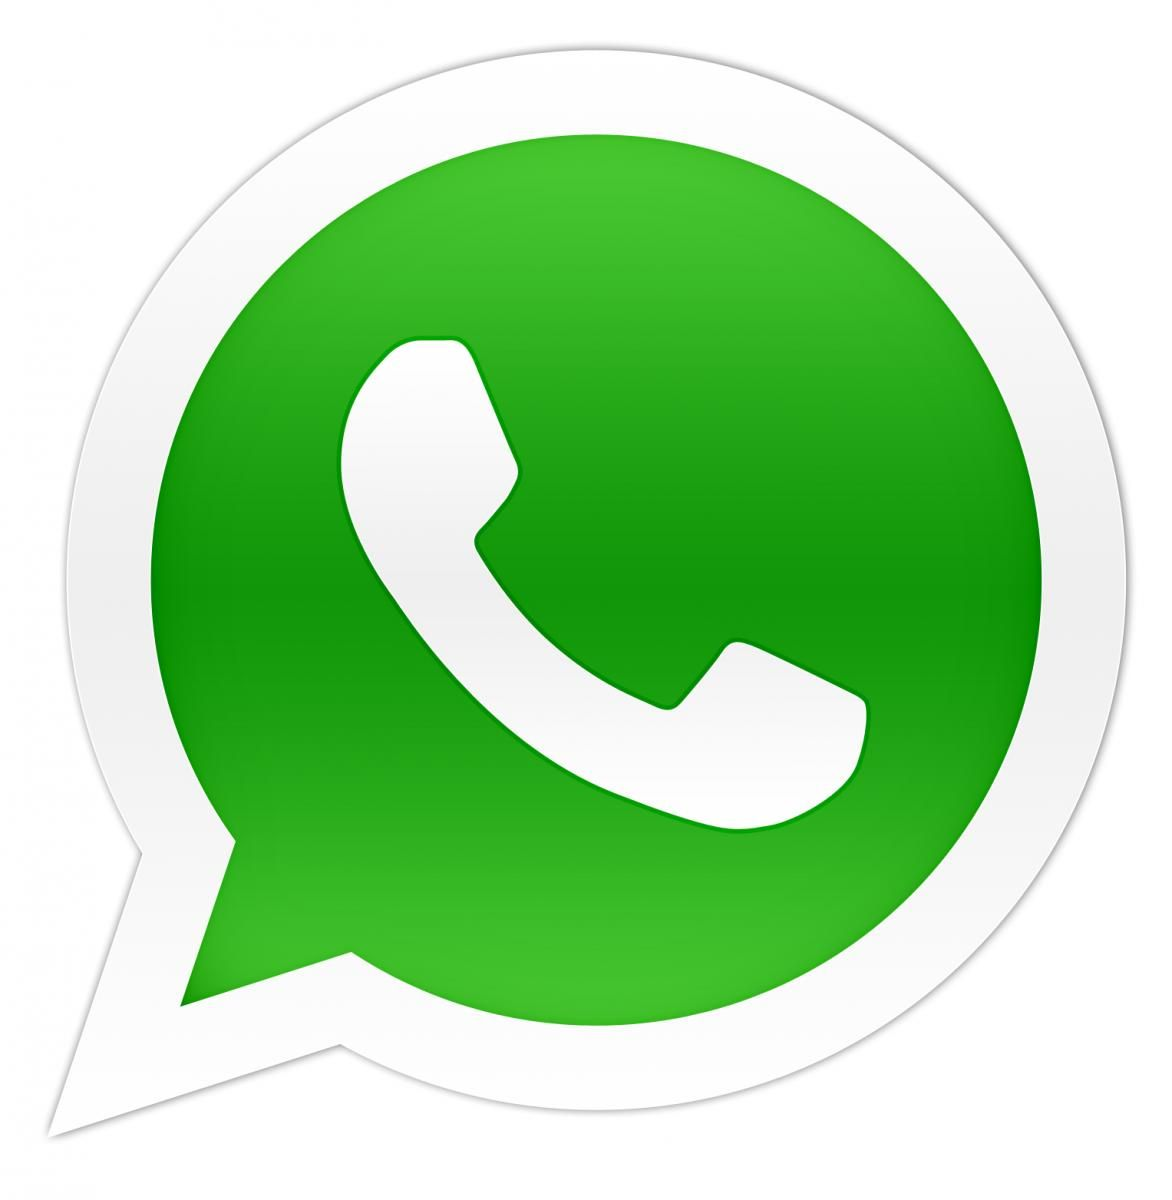 Logo Do Aplicativos Whatsapp Icone Whatsapp Aplicativos